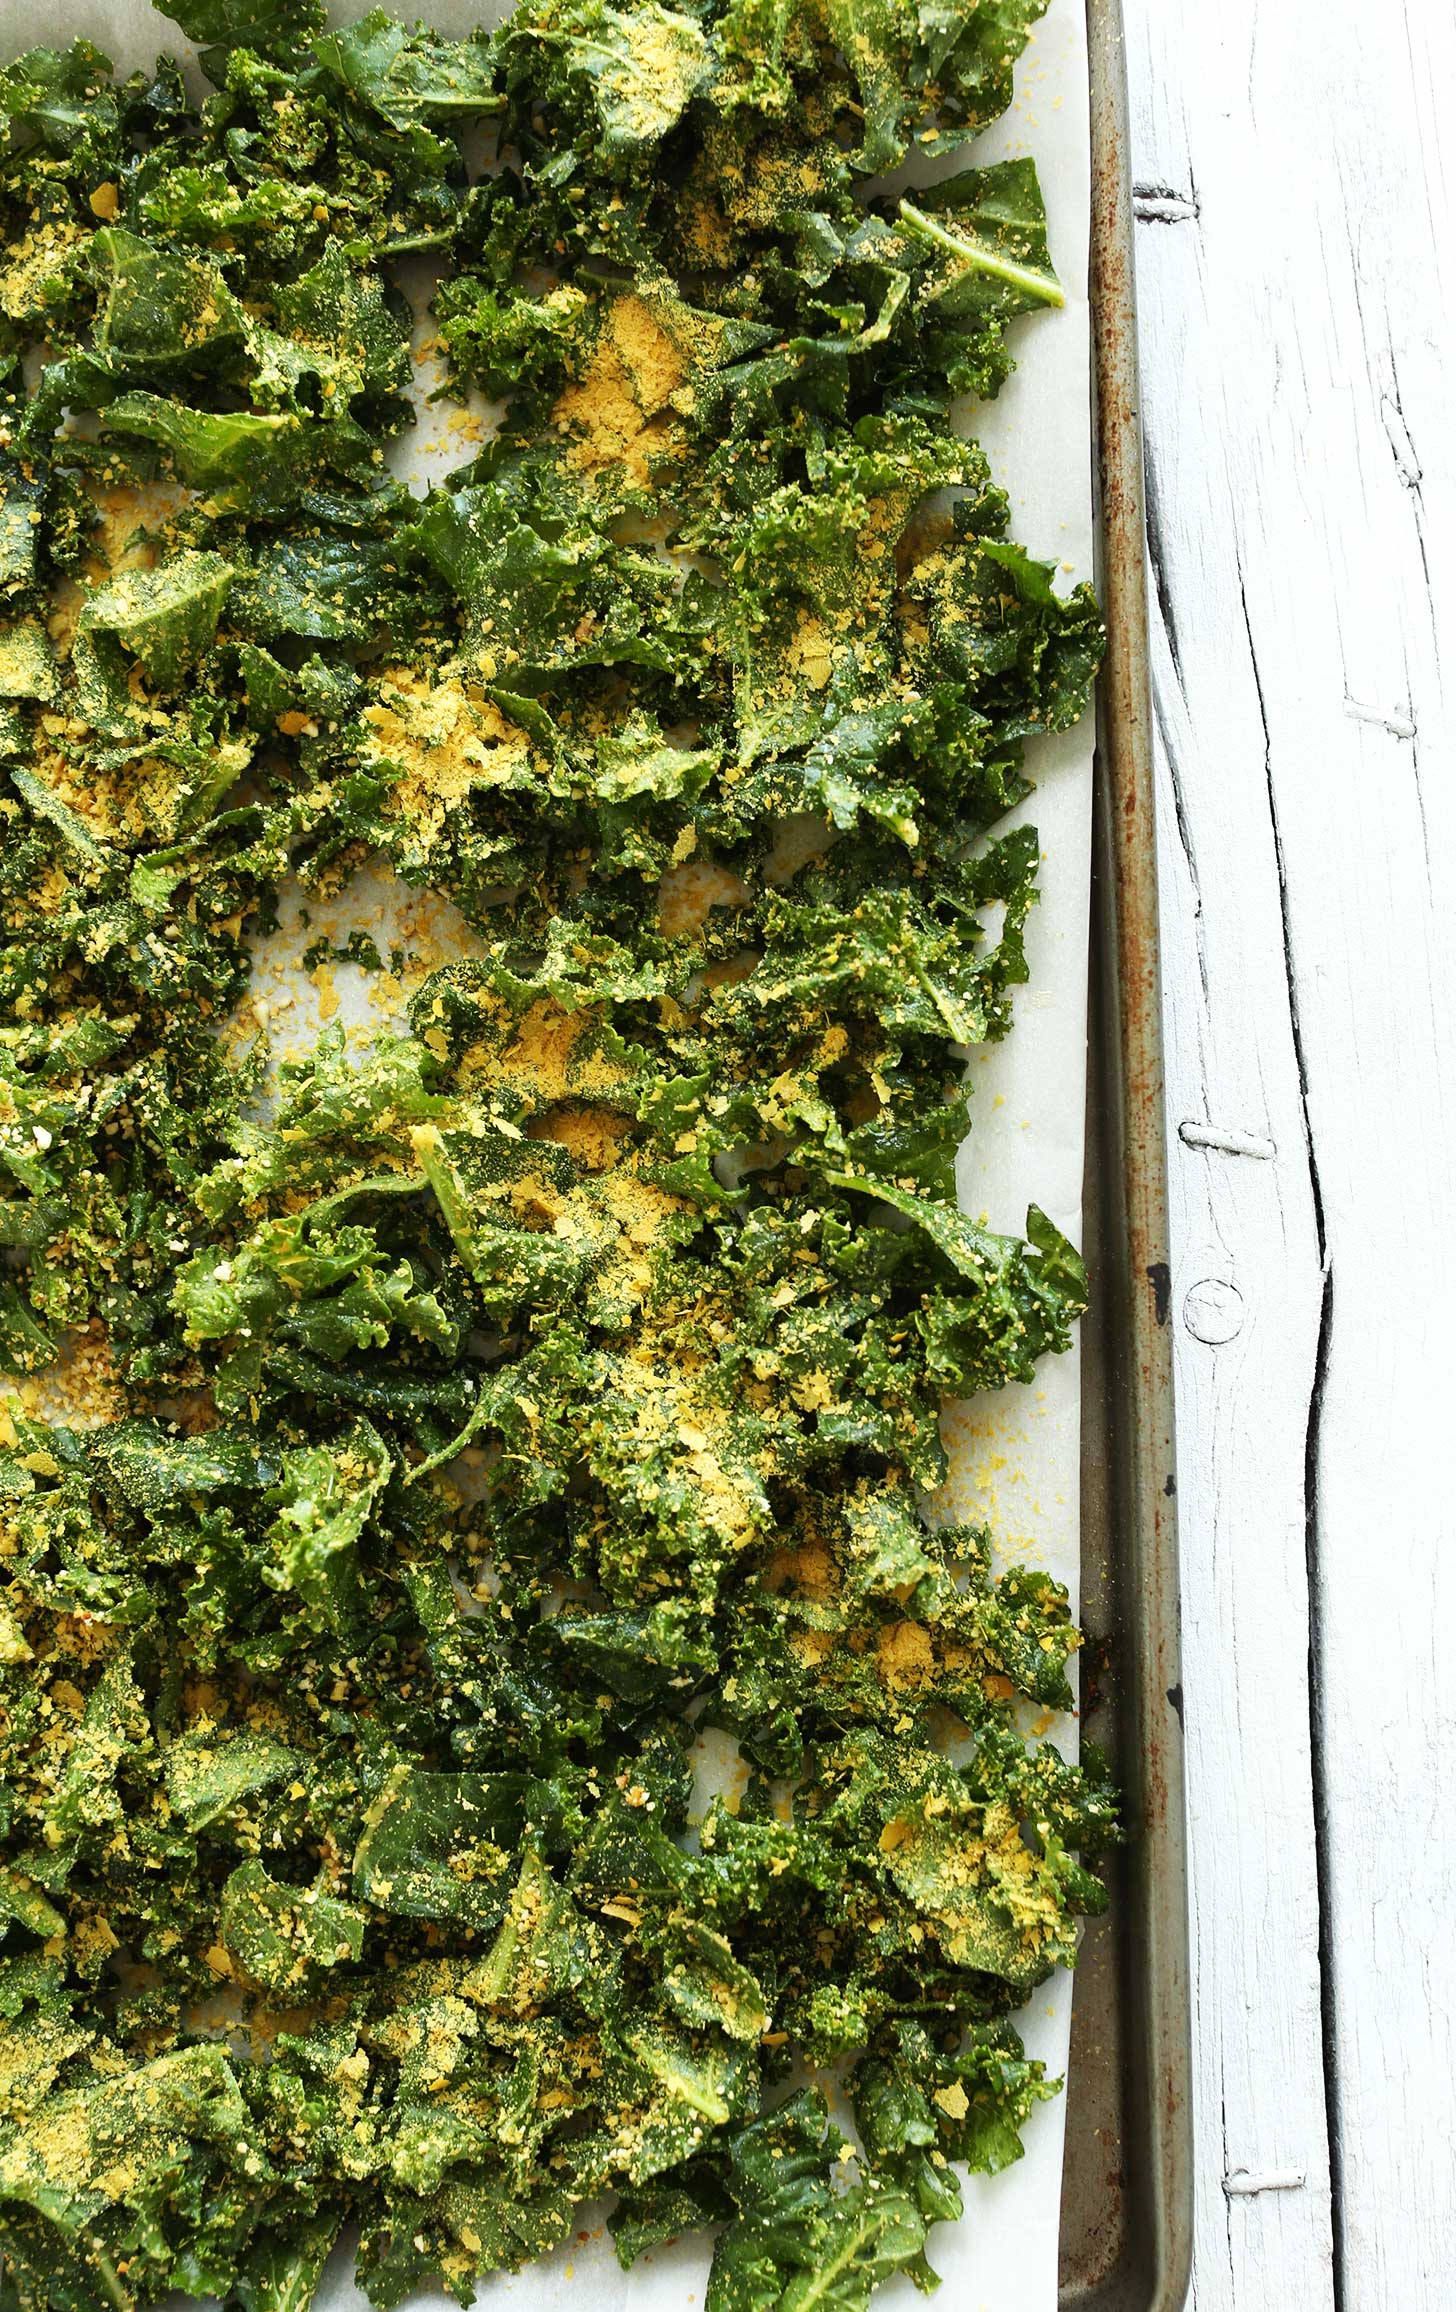 Parchment-lined baking sheet with kale, nutritional yeast, and spices for making homemade kale chips